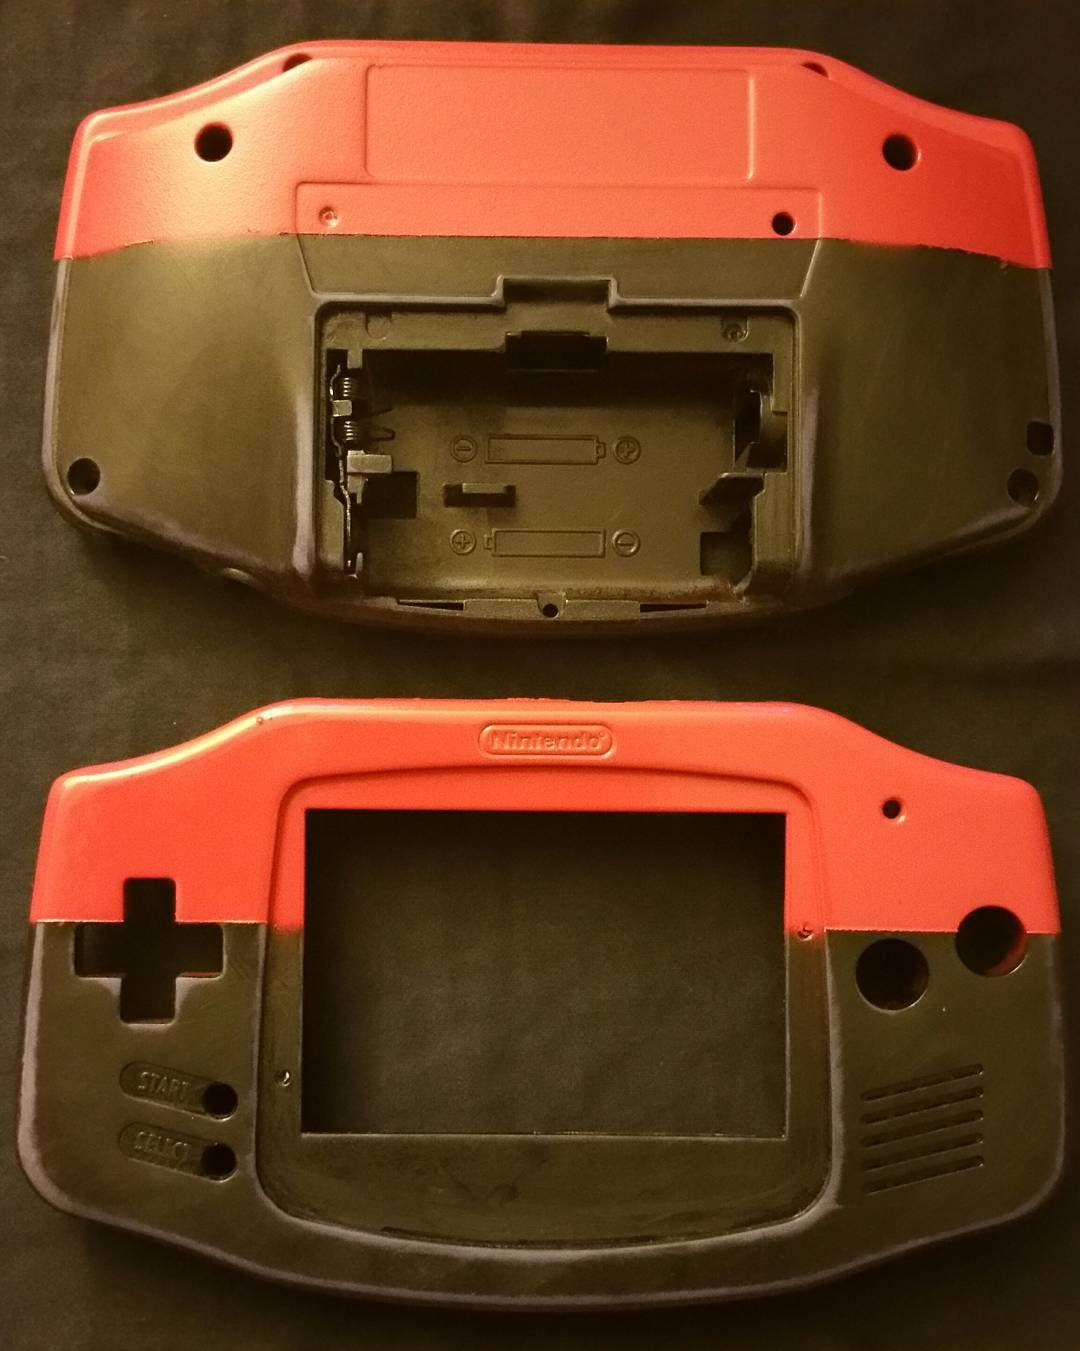 retrogamecustoms: Sanded down the shell and got my first custom on its way! Feels super smooth too. Can anyone guess what it will be? :) #retrogaming #nintendo #gameboyadvance #gaming #retrogamecustoms #customconsole #gameboy #gameboycolor #videogames #gameboy #microobbit